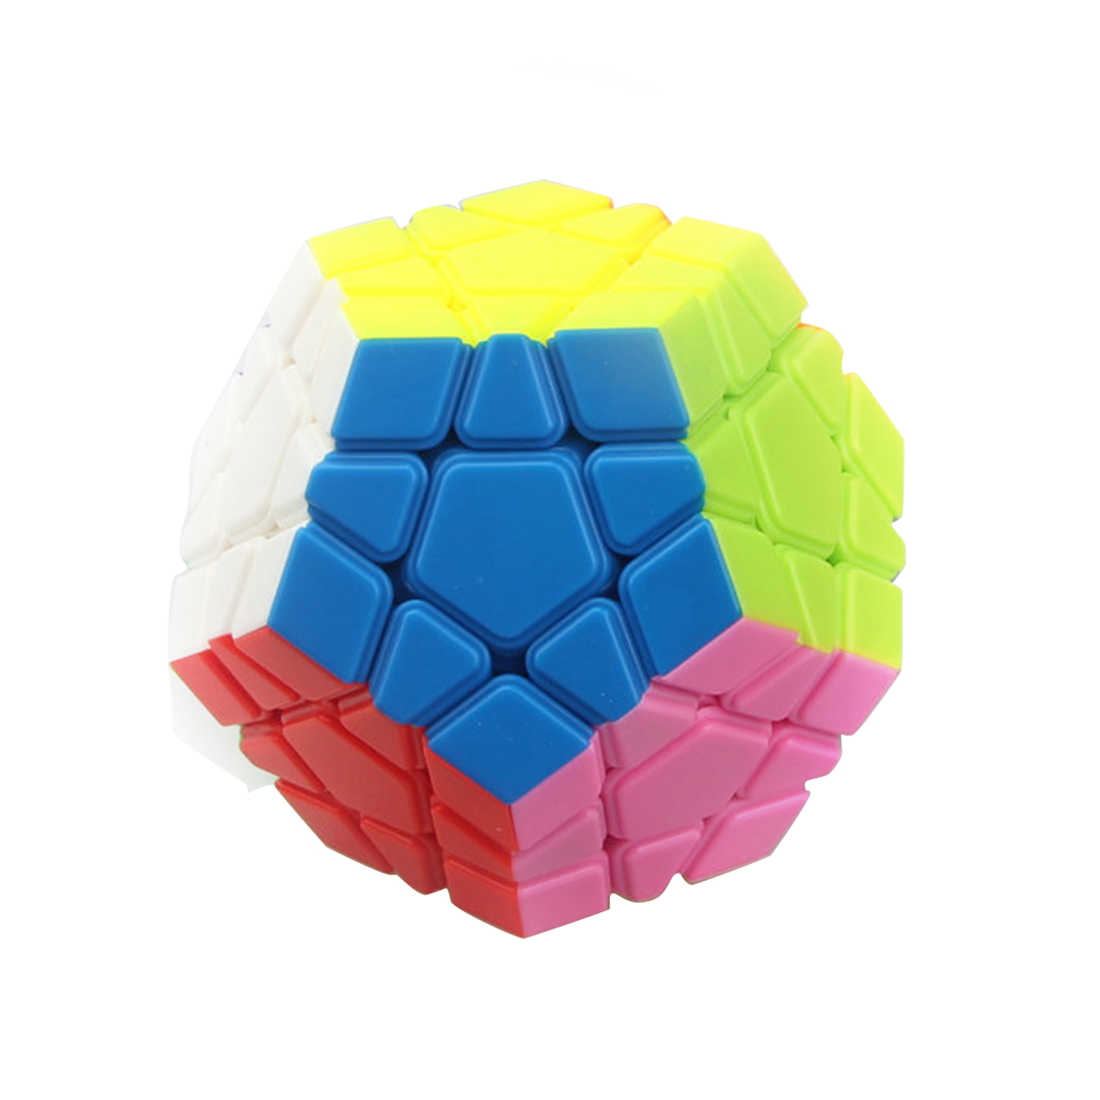 Toys & Hobbies Colorful Aspiring Surwish Yj Ruihu Five Special-shaped Magic Cube Educational Toys For Brain Training Puzzles & Games